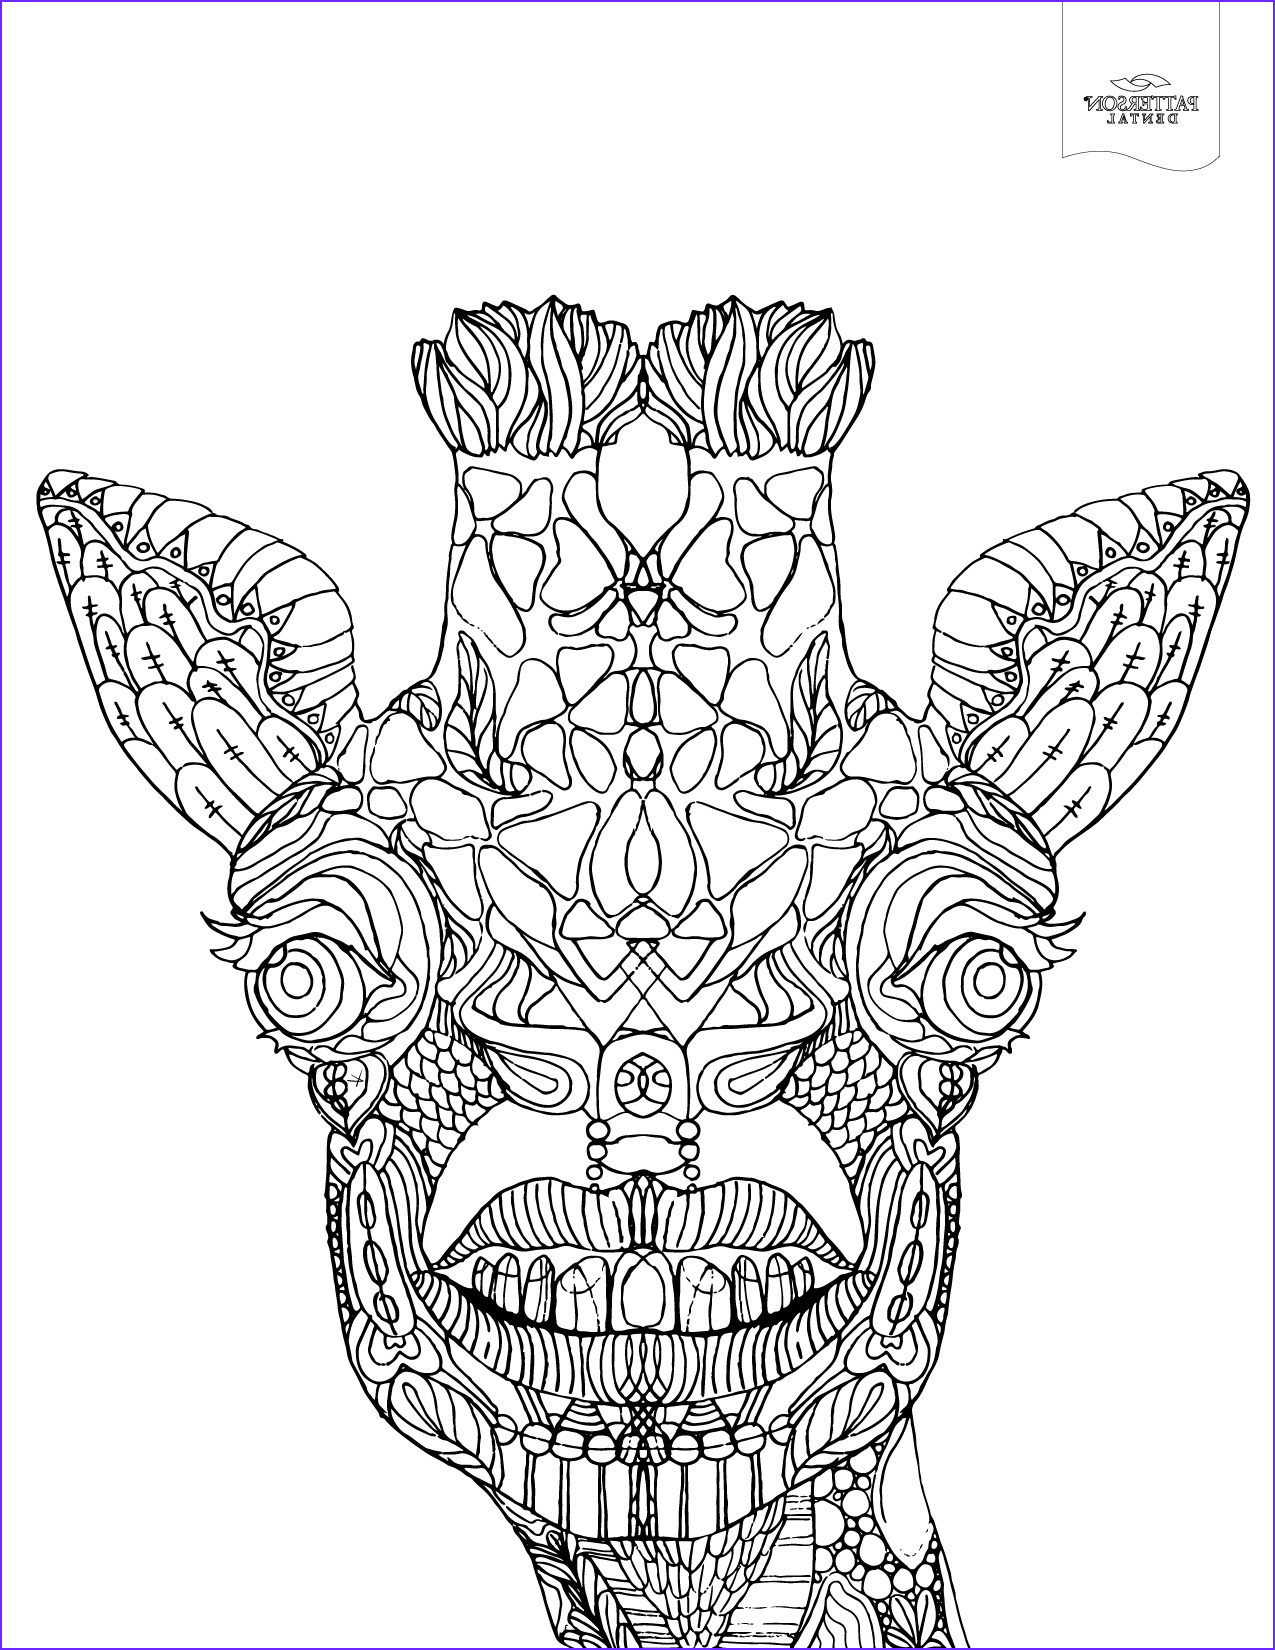 Giraffe Coloring Pictures New Photos 10 toothy Adult Coloring Pages [printable] F the Cusp